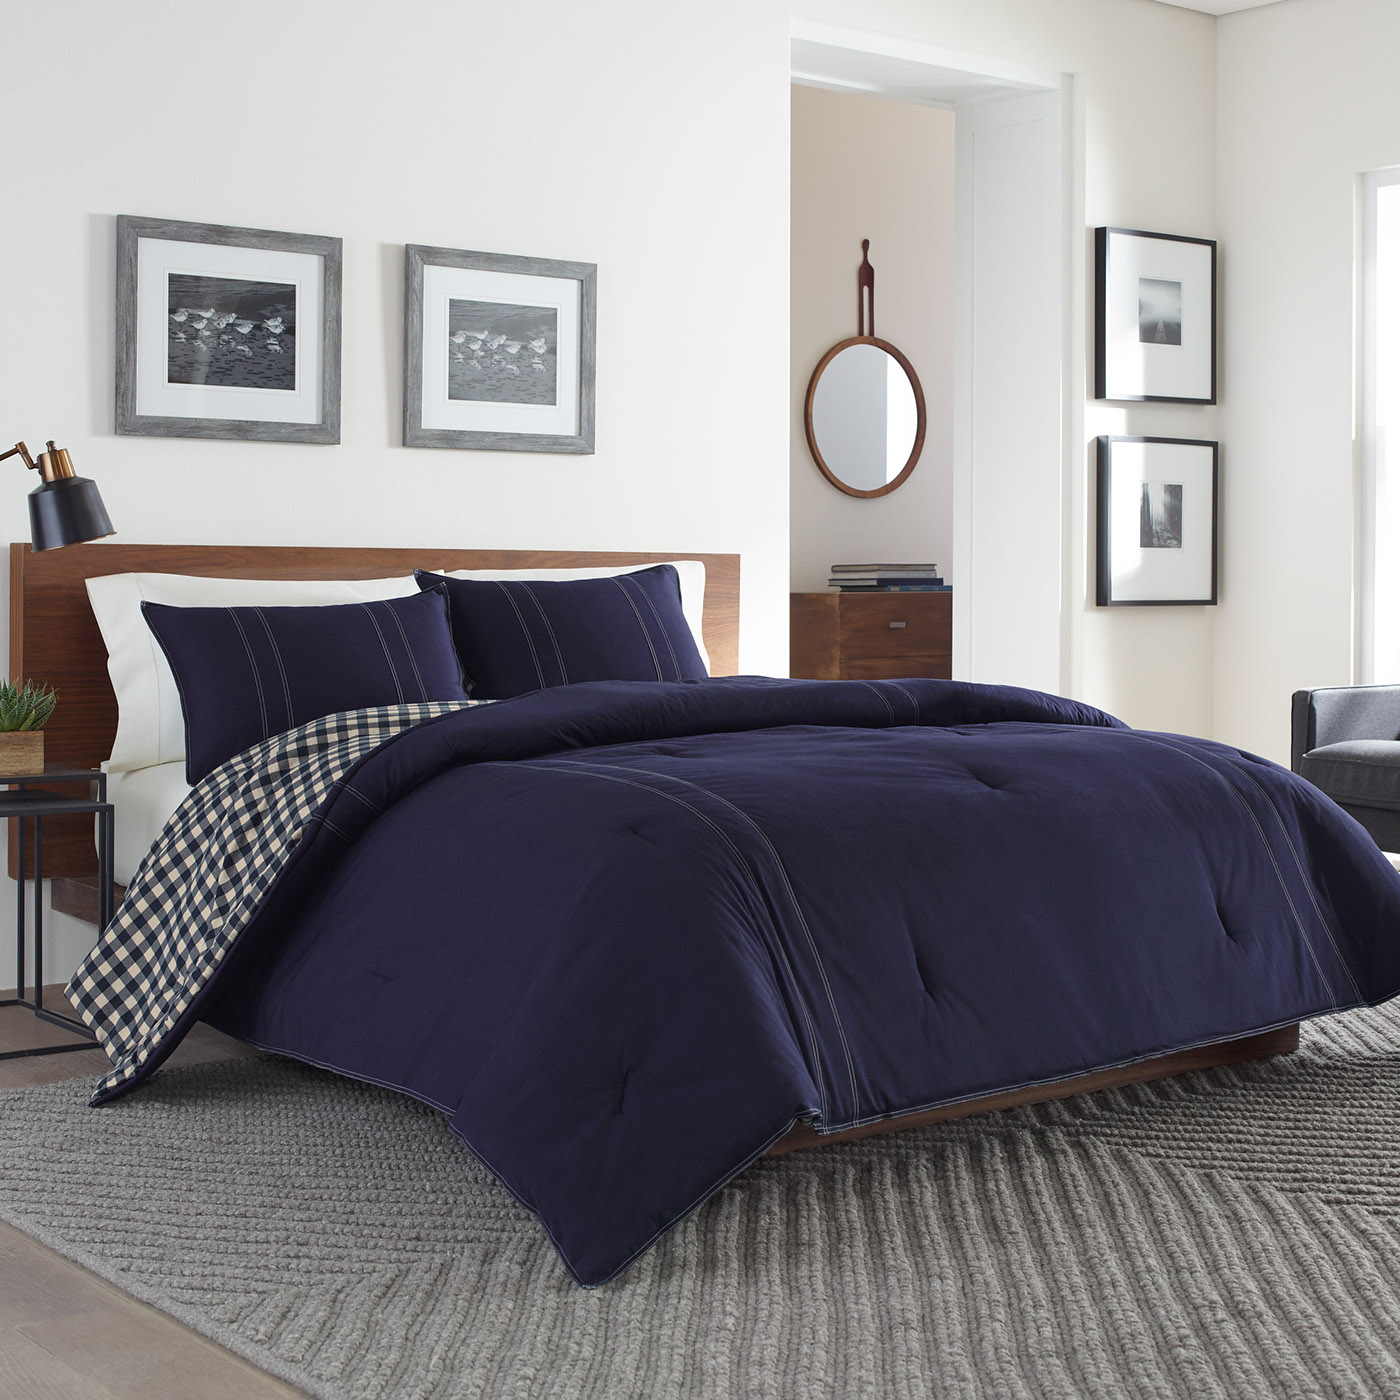 prepare bed plaid home set within from intended own bedding eddie for comforter vandanalighthealing your bauer